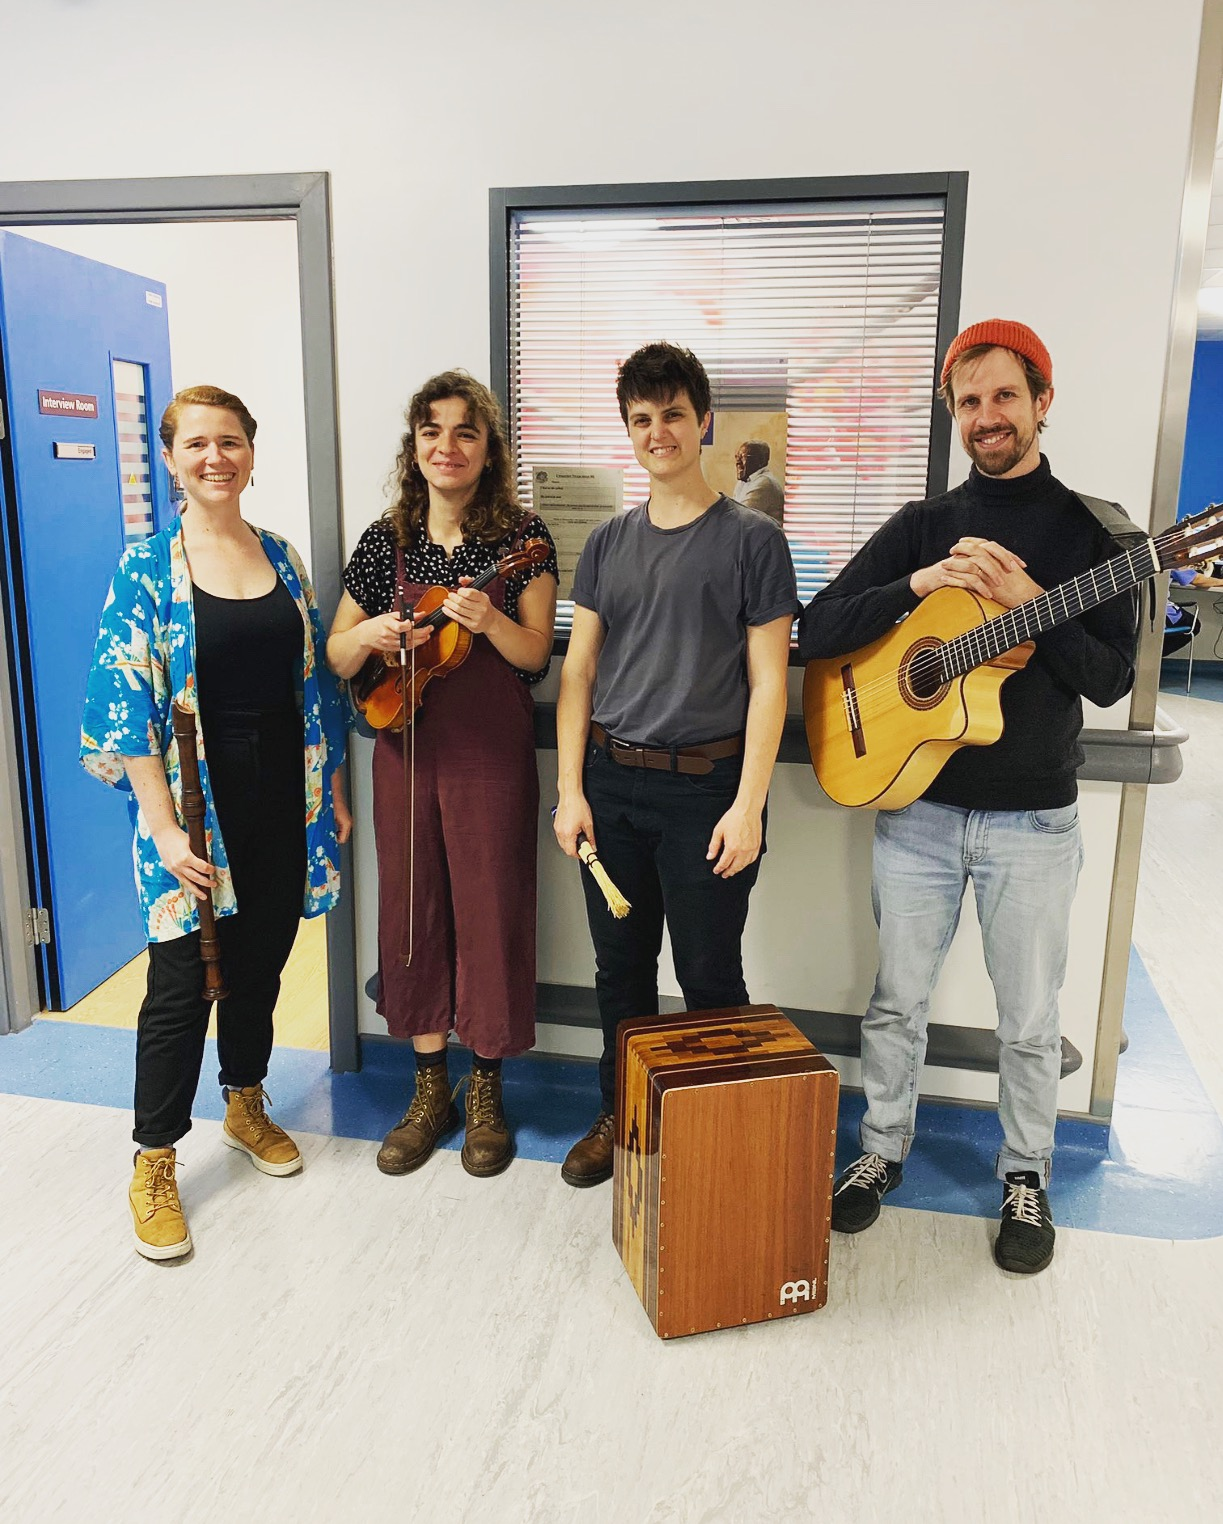 (from left to right)  Rhia Parker, Beatriz Rola, Kendall Perry and Jamie Doe, playing in Dementia Awareness Week at the Royal Free Hospital in London, U.K.